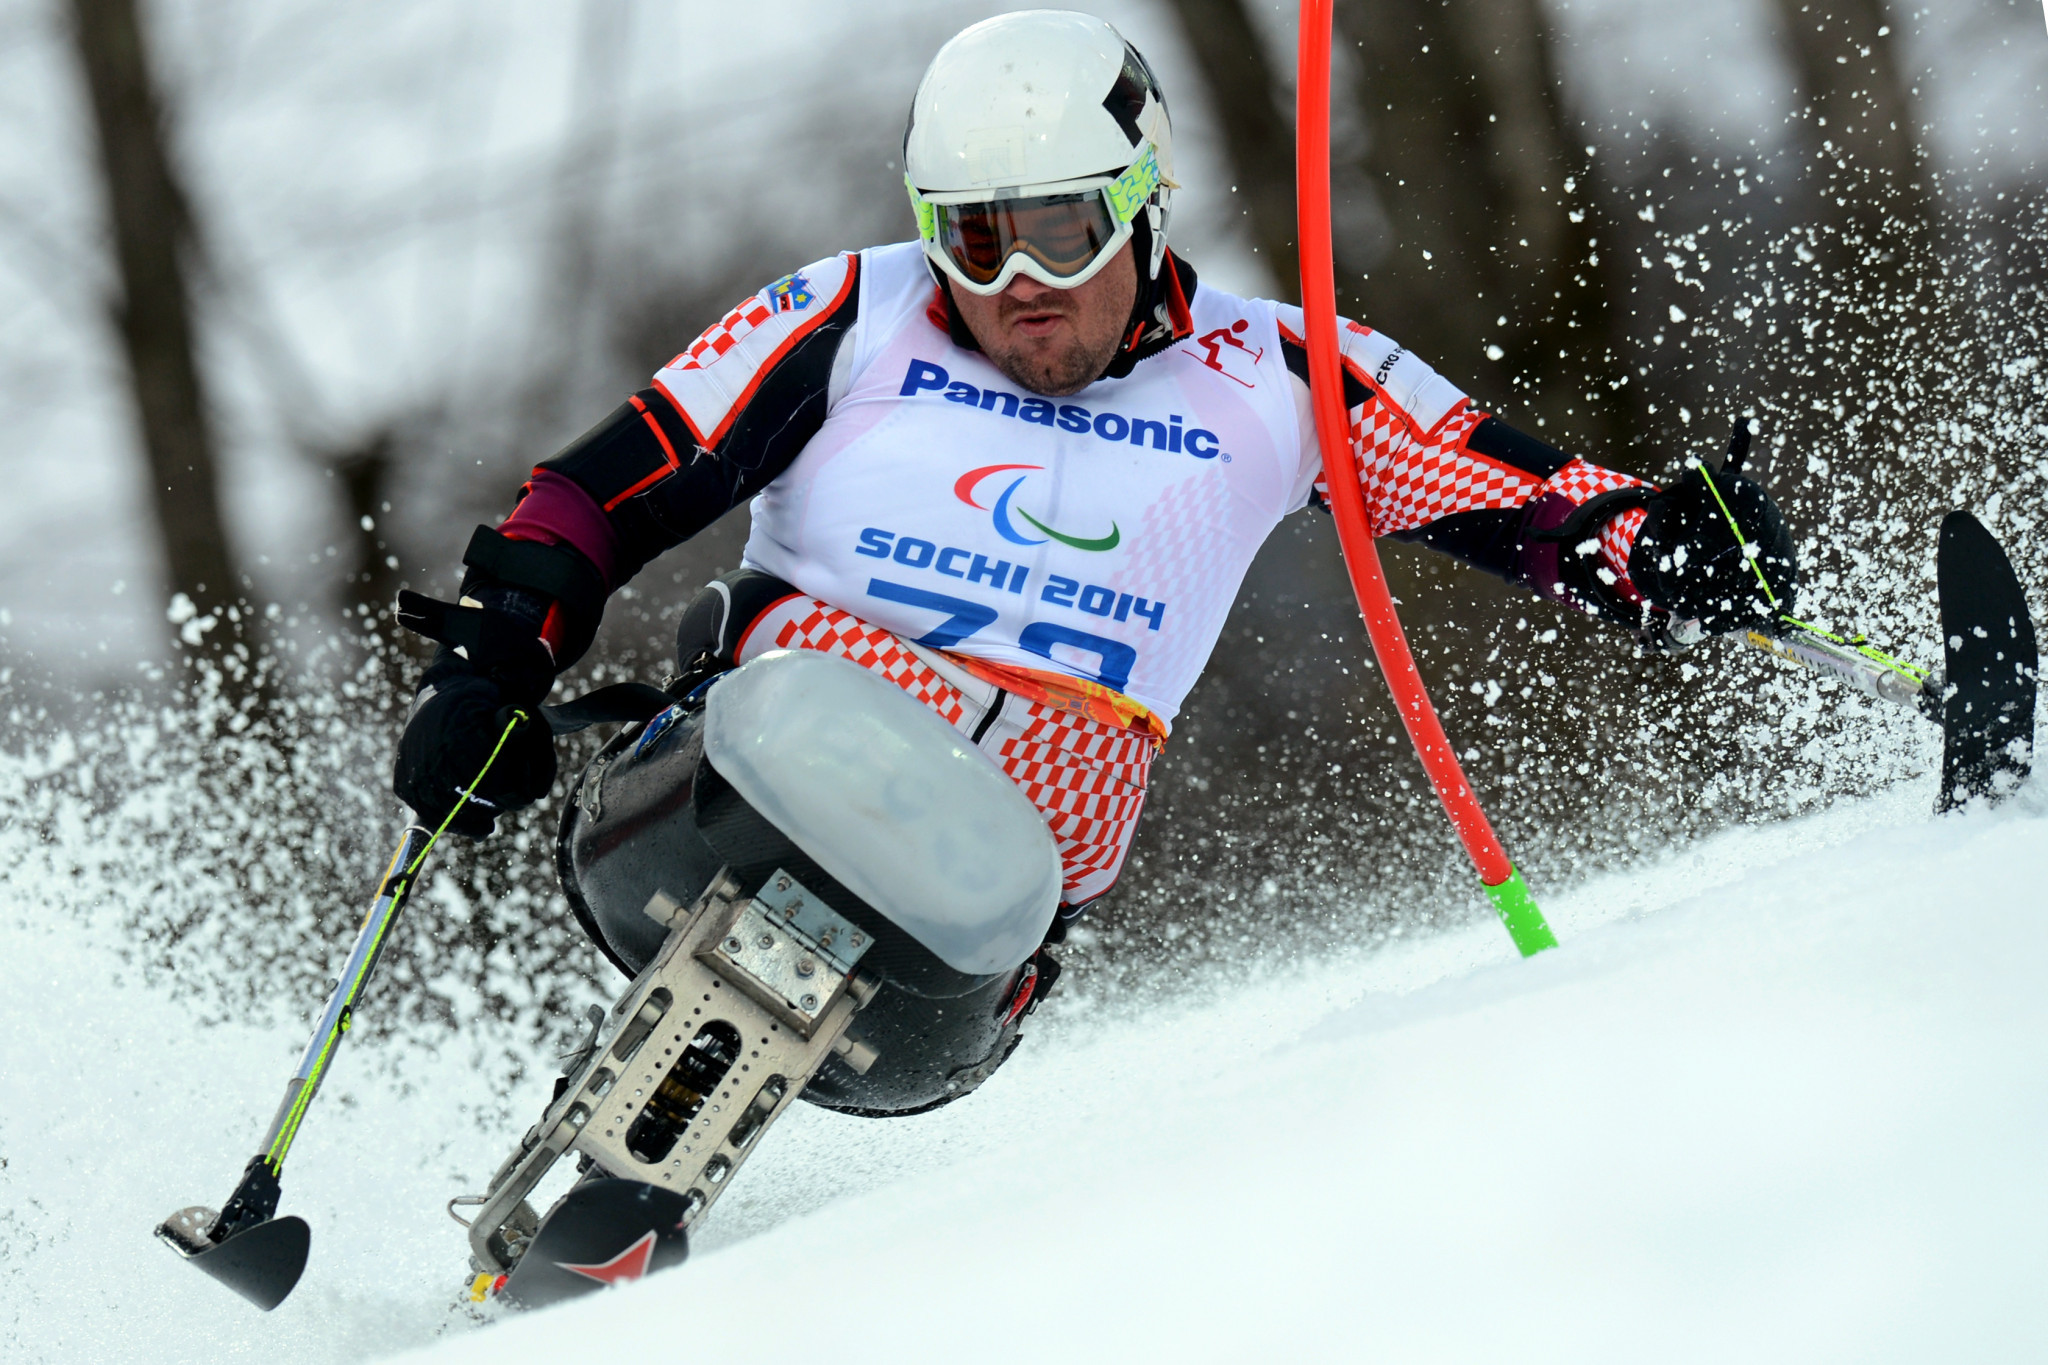 Sokolovic secures first World Para Alpine Skiing World Cup win in almost two years